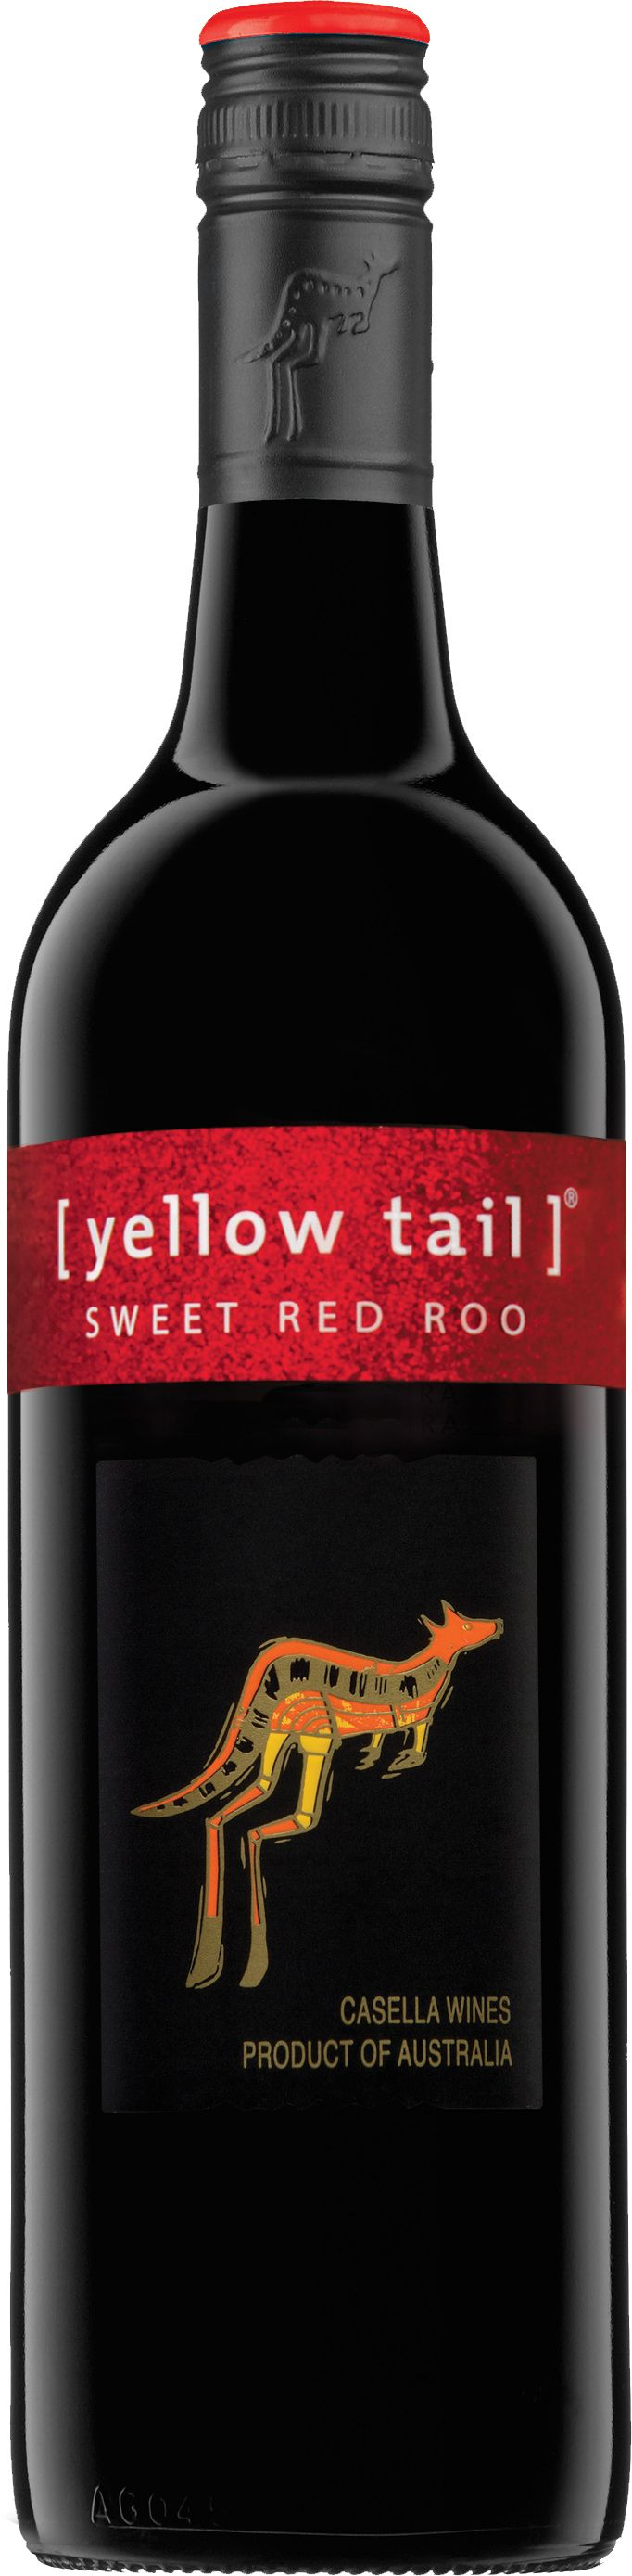 Yellow Tail-Sweet Red Roo A GNO wine. Very sweet for a red, but that's why I like it! And it's a natural sweet, not artificial.